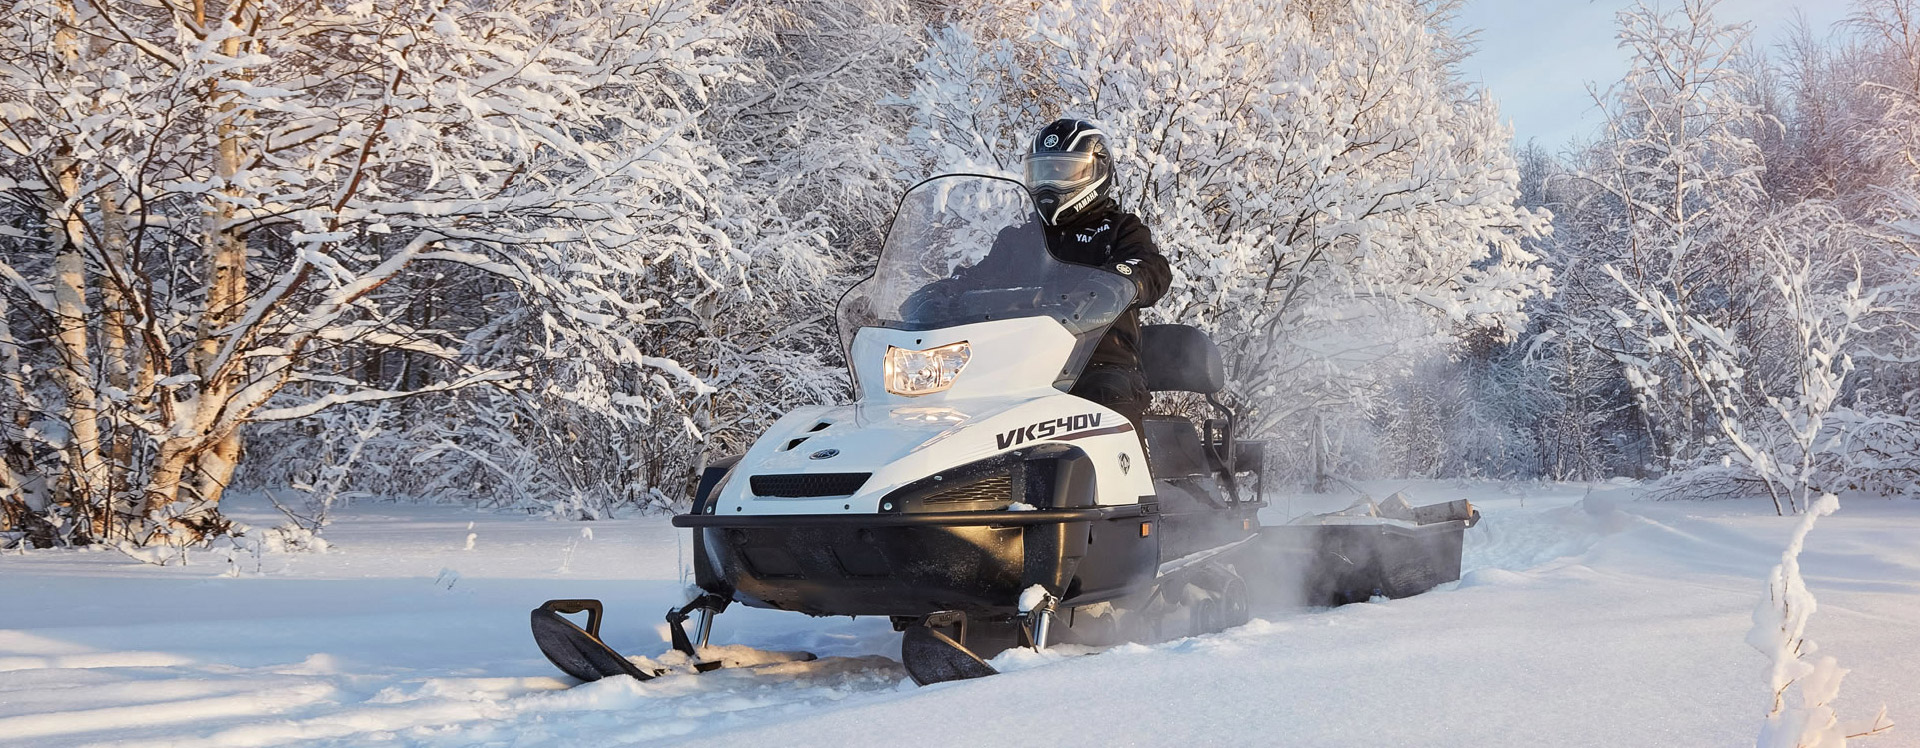 2020 Yamaha VK540 2-up Touring Utility Snowmobile - Model Home